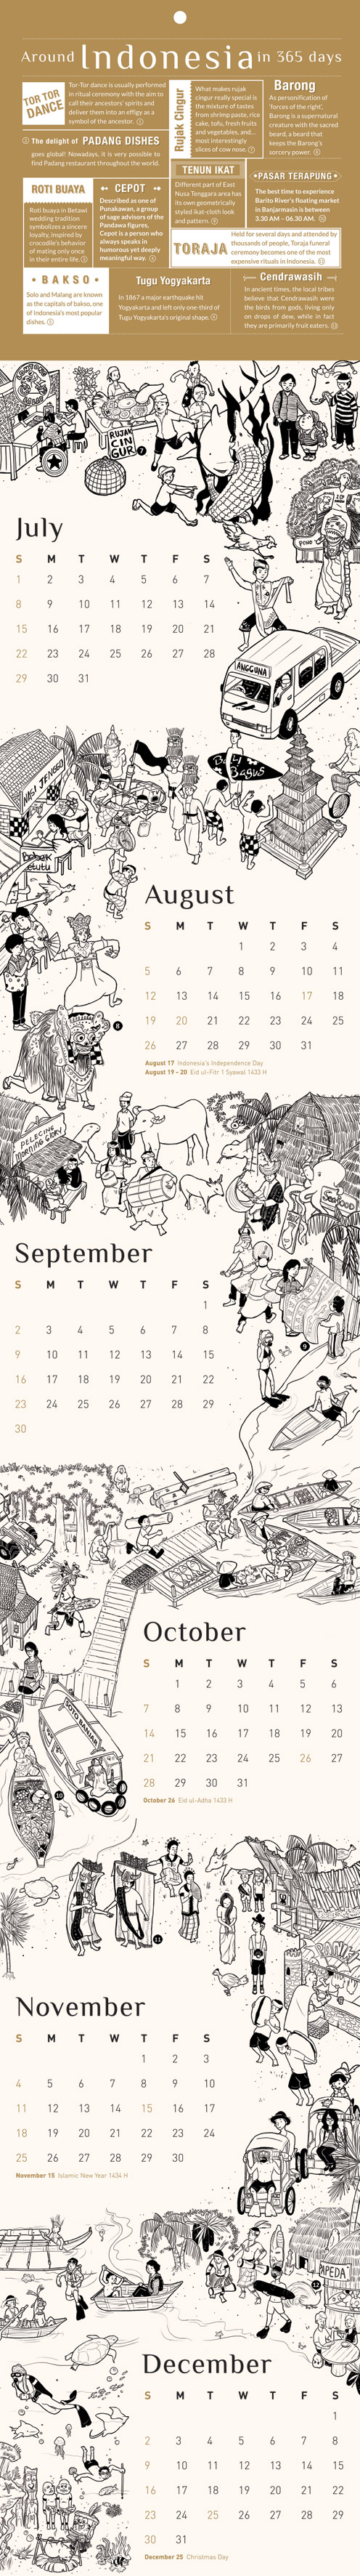 Kineto Calendar 2012 July - December by qbenk